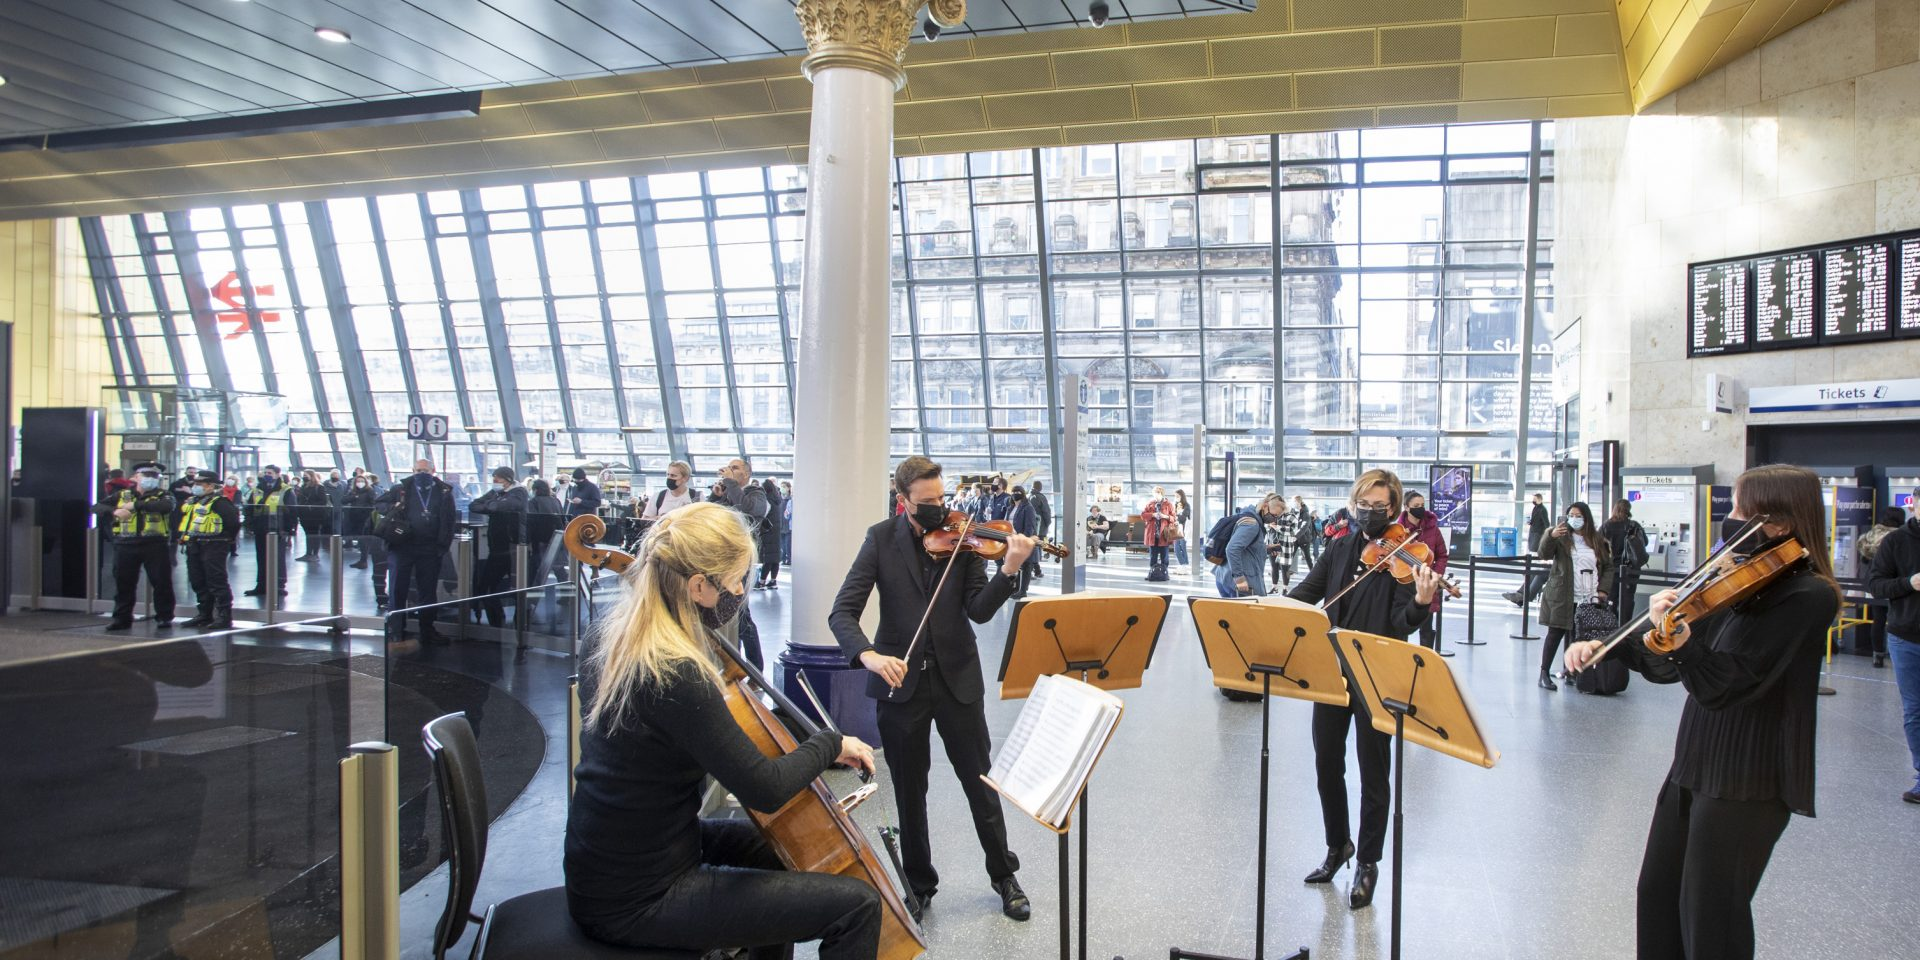 The RSNO celebrates the official opening of Glasgow's new Queen Street Station